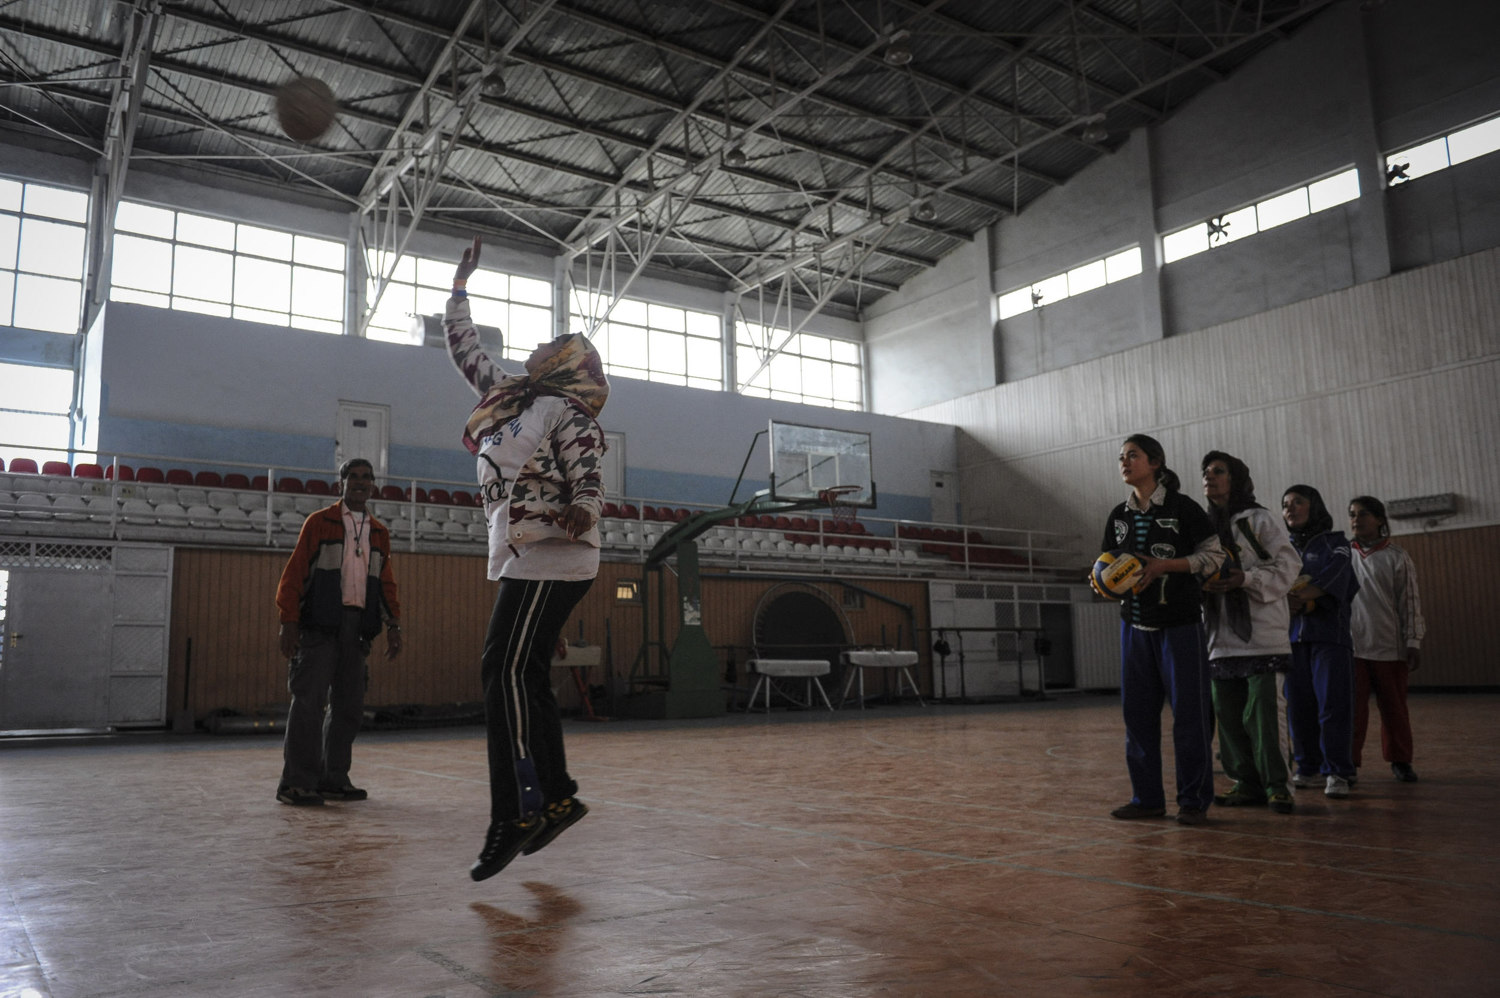 Girls play volleyball in the Olympic Stadium's Women's Gym in Kabul Afghanistan. The girls come three times a week to play volleyball against each other as there is no other team in the country. Coach Abdul Hamid Sufi says that the girls are more interested in volleyball than the boys, and volunteer's his time as the Afghan government does not support the women's team.